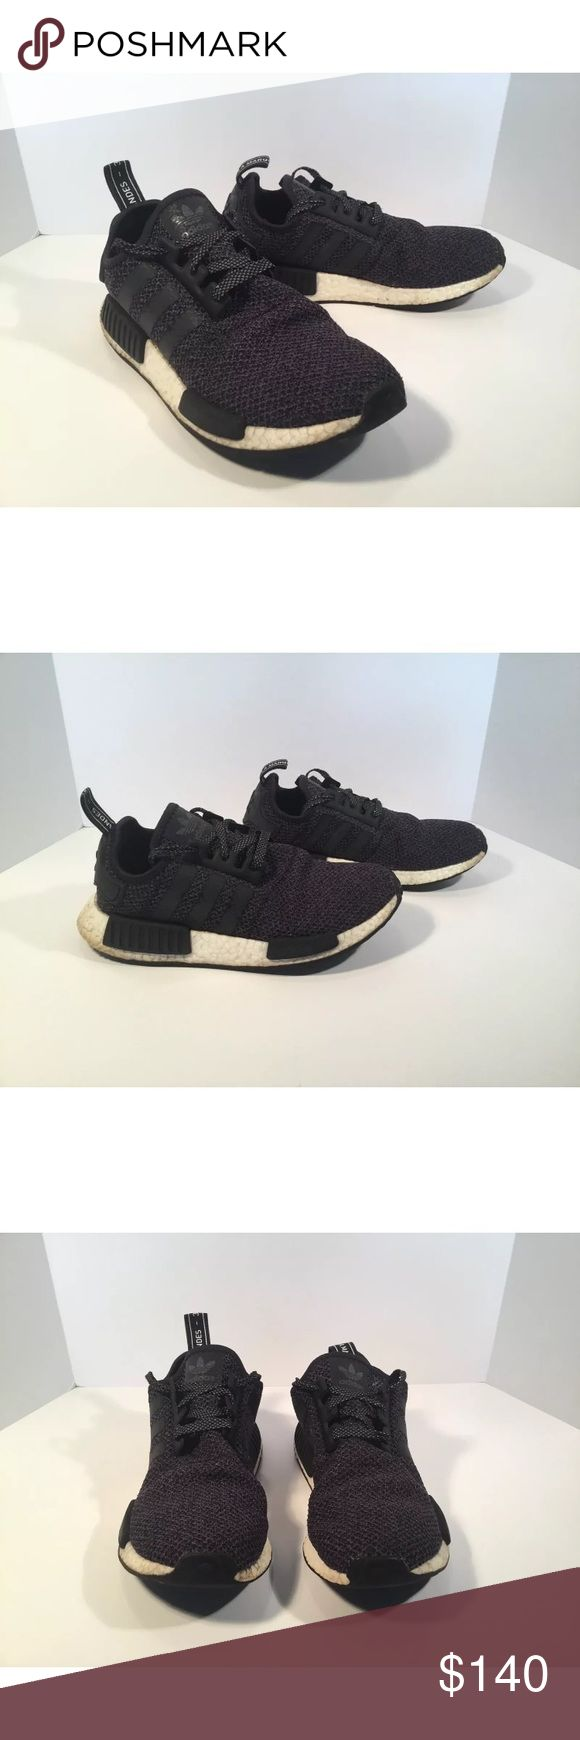 Adidas NMD R1 reflective Item details:   -adidas brand  -in used condition, please refer to pictures  -Men's Size 7  -Rare colorway  -Reflective 3m  -Grey, White and black  -boost technology  -I ship next day  -Nmd R1   Please let me know if you have any questions. adidas Shoes Sneakers